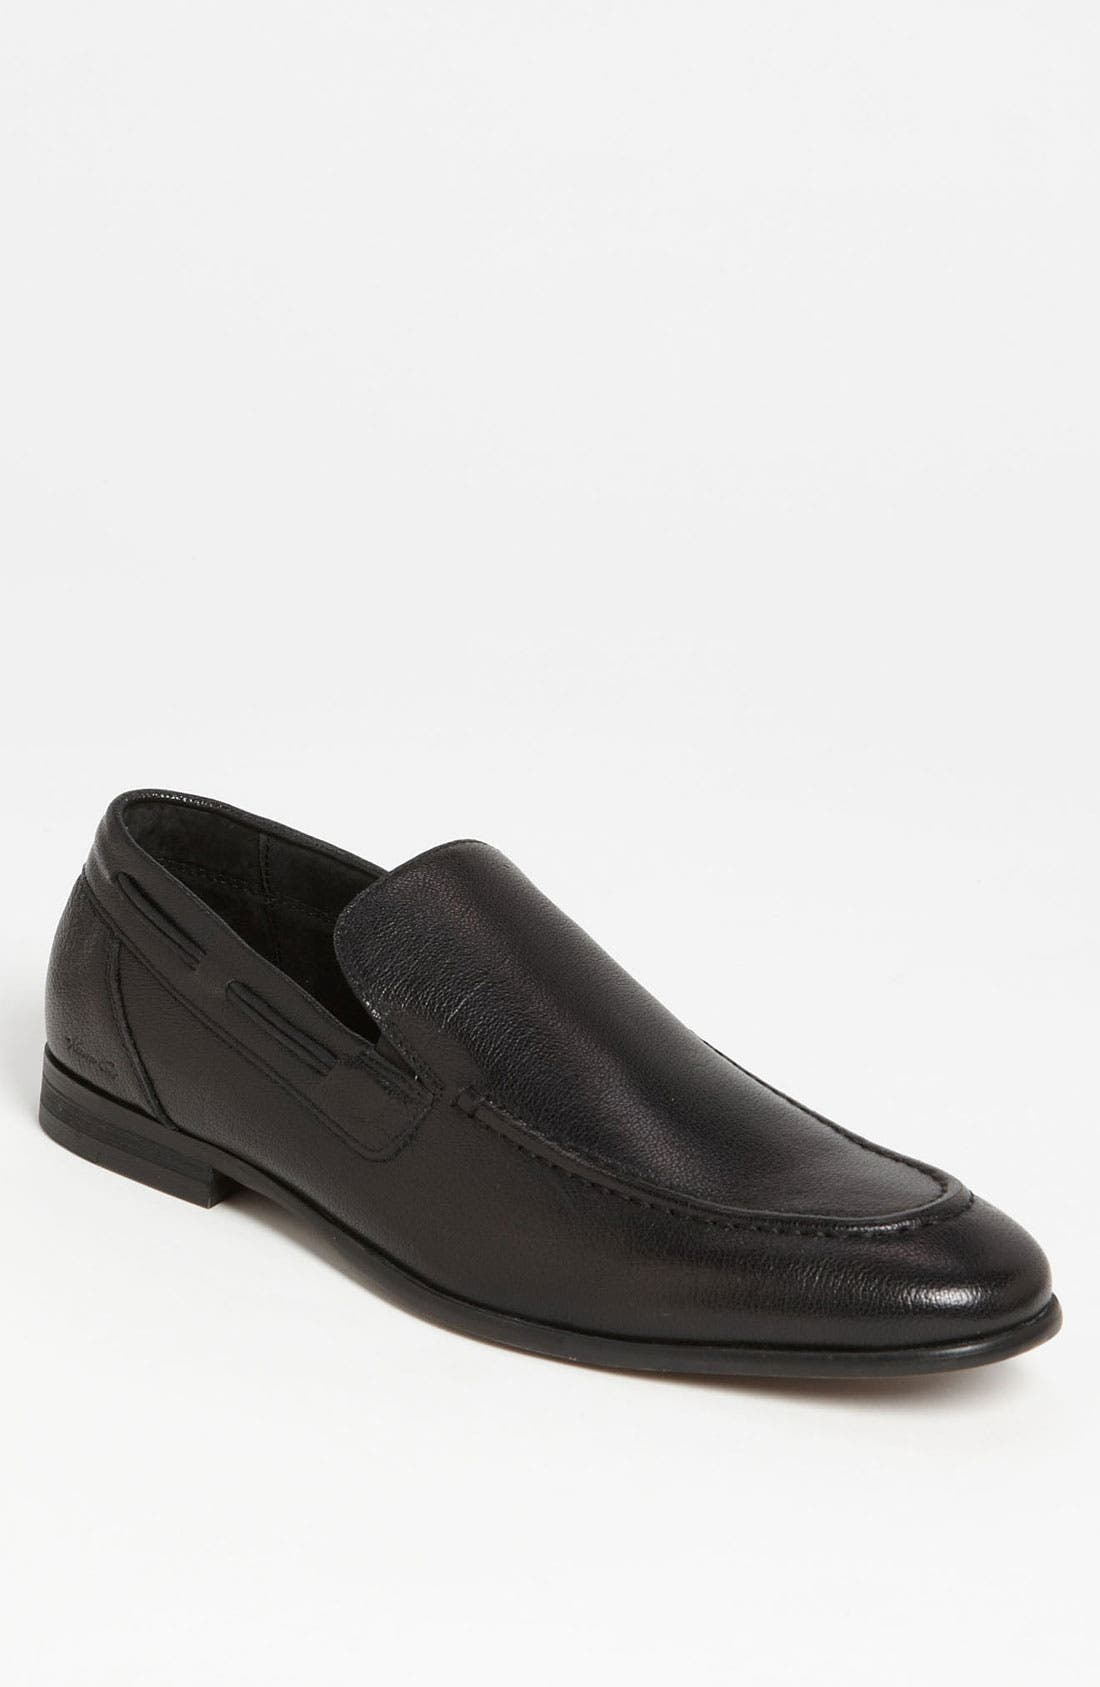 Alternate Image 1 Selected - Kenneth Cole New York 'Spring Ahead' Slip-On